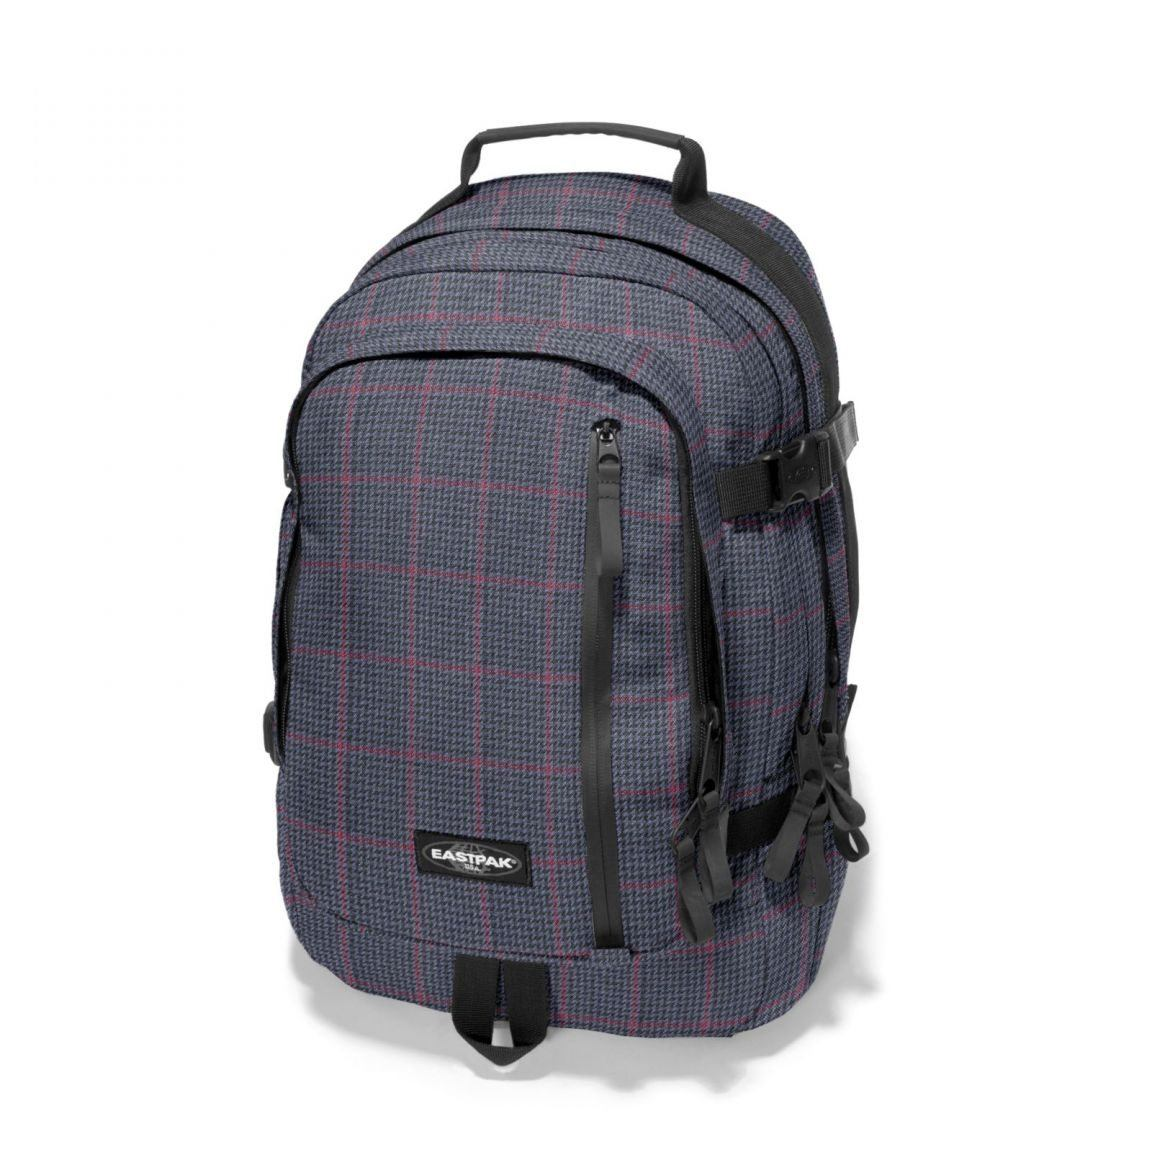 eastpak rucksack volker karo grau bags more. Black Bedroom Furniture Sets. Home Design Ideas